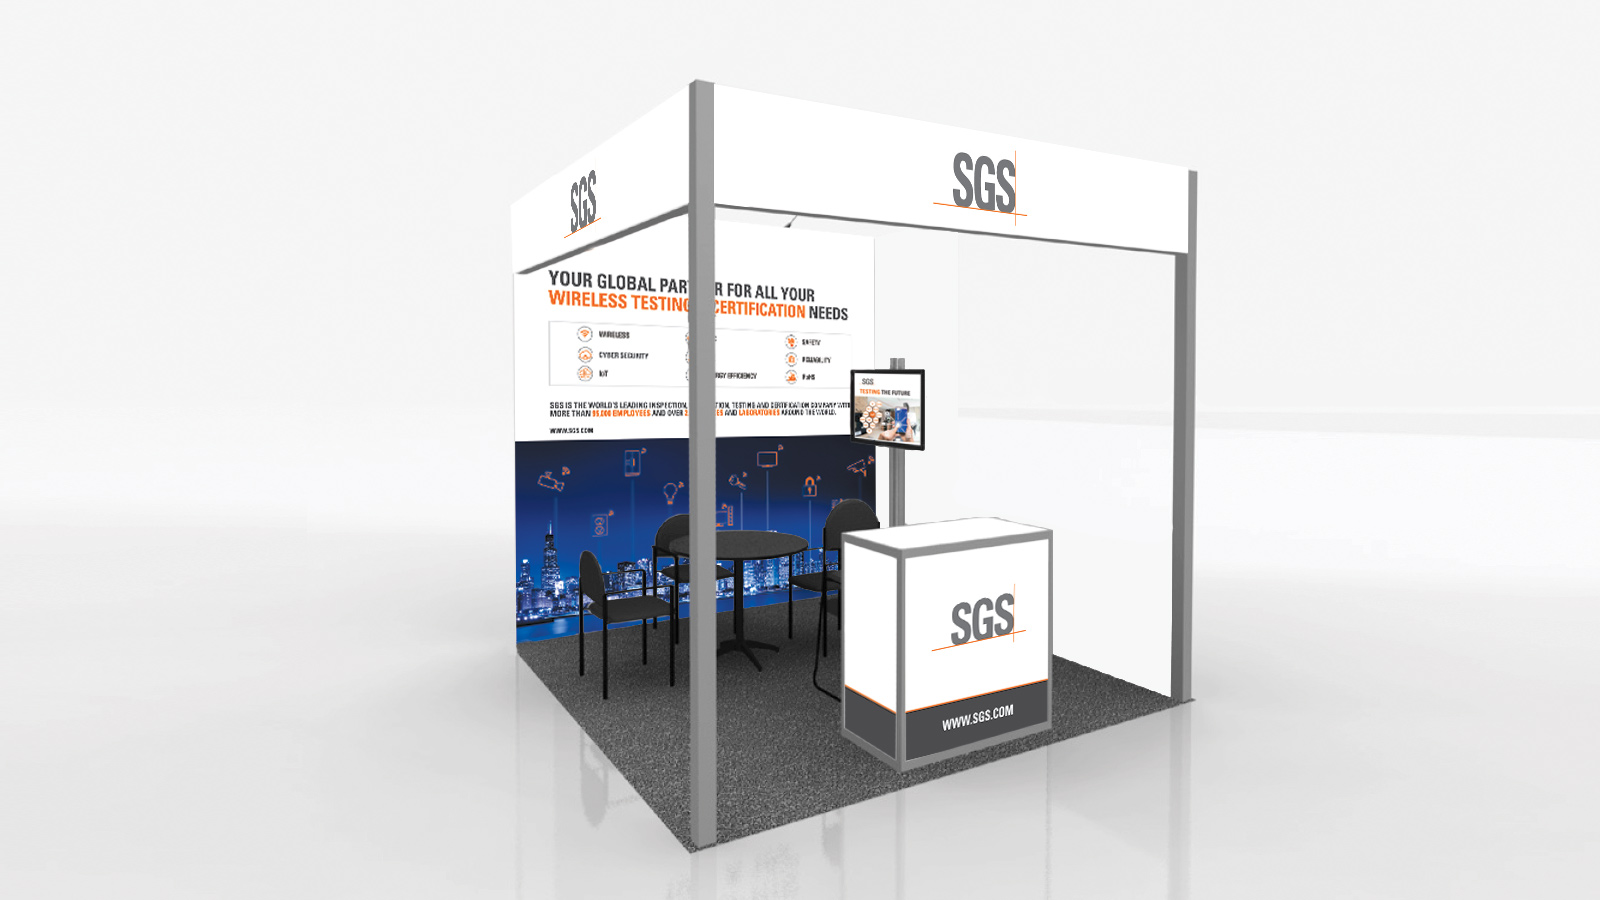 Exhibition stand artwork